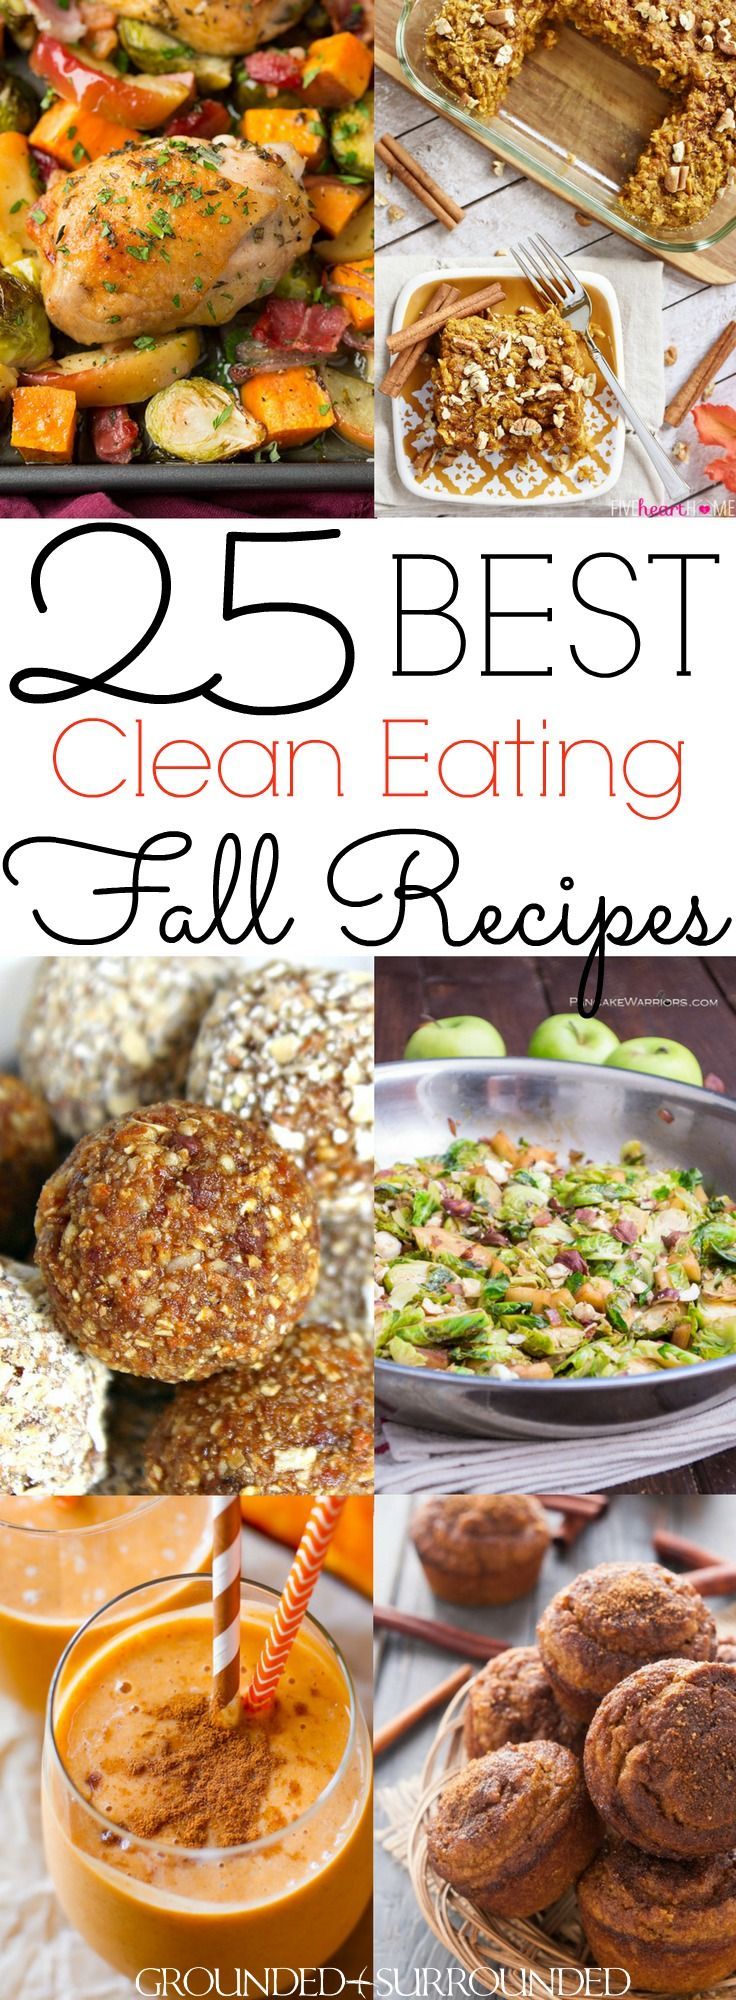 25 Clean Eating Fall Recipes is part of Clean eating fall recipes - My very favorite season is fall, otherwise, known as autumn for you season sticklers  ) We are blessed with all 4 seasons here in South Dakota, but fall takes the cake for me! Its the perfect combination of cooler weather, slippers, my wedding anniversary, slippers, pumpkin everything, boots, slippers, the colorful foliage, jeggings, slippers, and comfort foods like soups and stews making their way back to our dinner table  Did I mention slippers  ;) Most of these 25 Clean Eating Fall Recipes are my very favorites  I make them every year   sometimes weekly  I featured a few new ones too that I am totally craving  Can